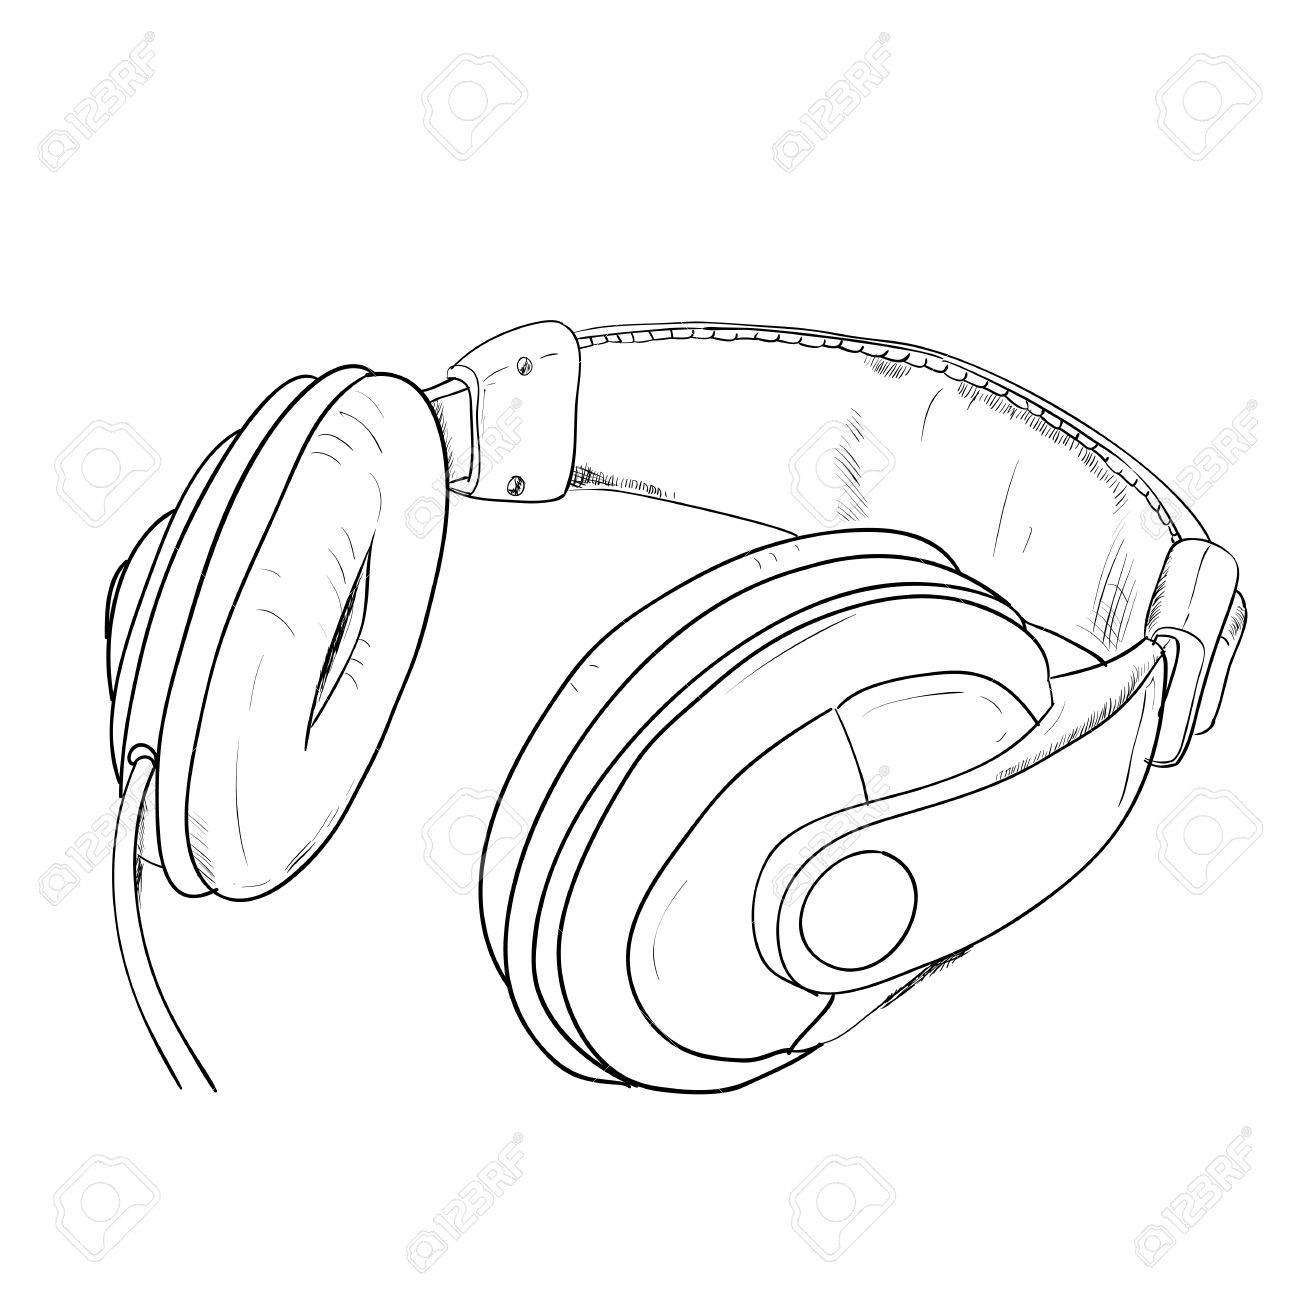 Line Art Headphones : Headphones drawing at getdrawings free for personal